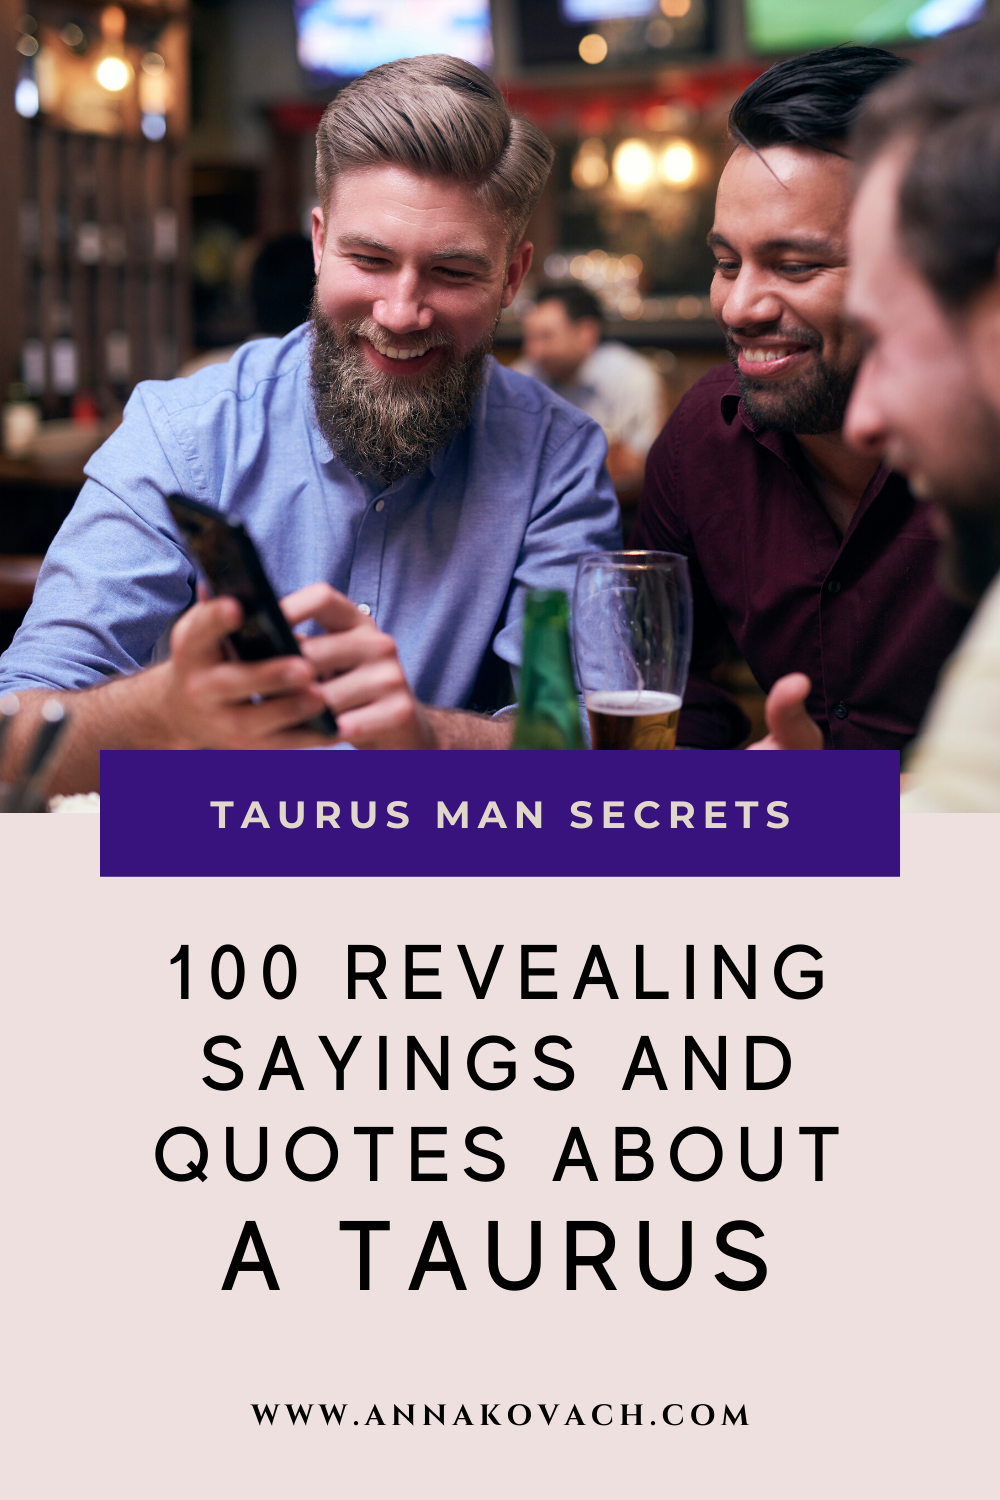 100 Revealing Sayings And Quotes About A Taurus in 2020